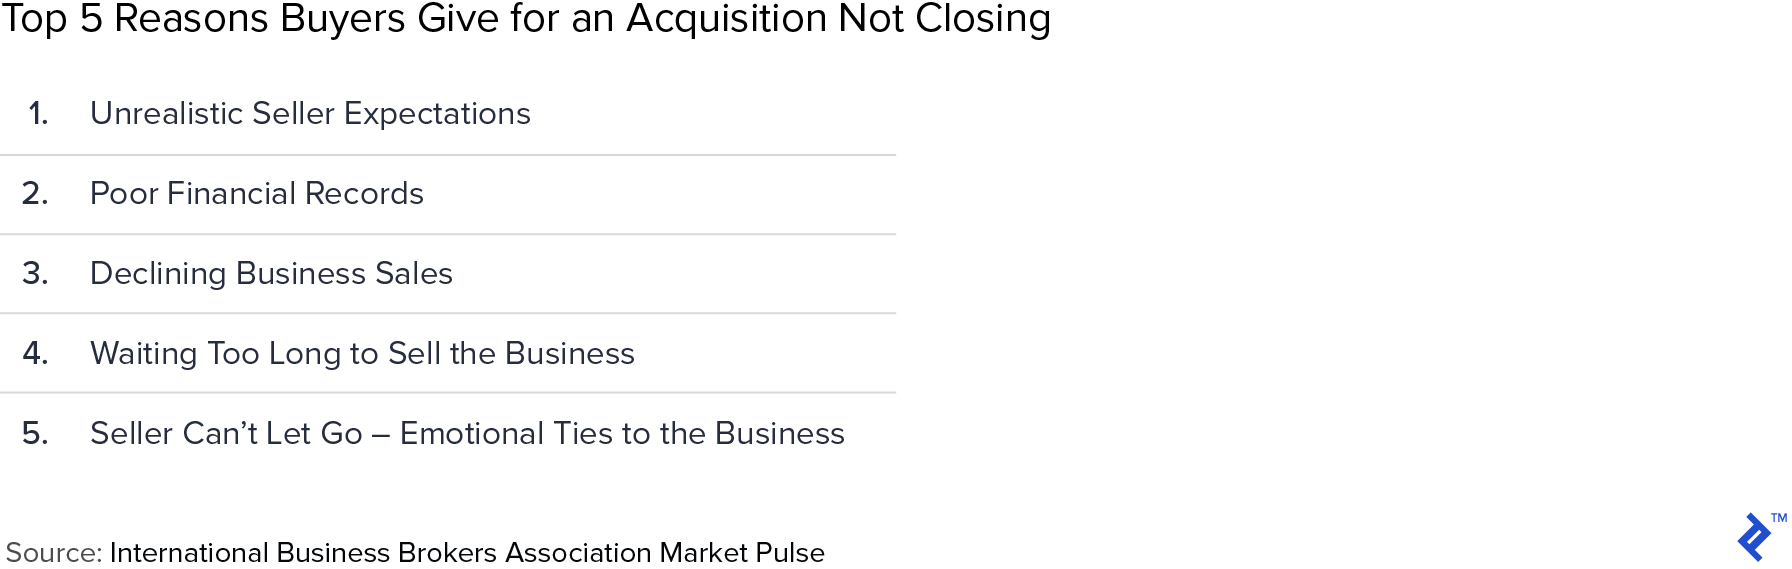 Top five reasons buyers give for an acquisition not closing